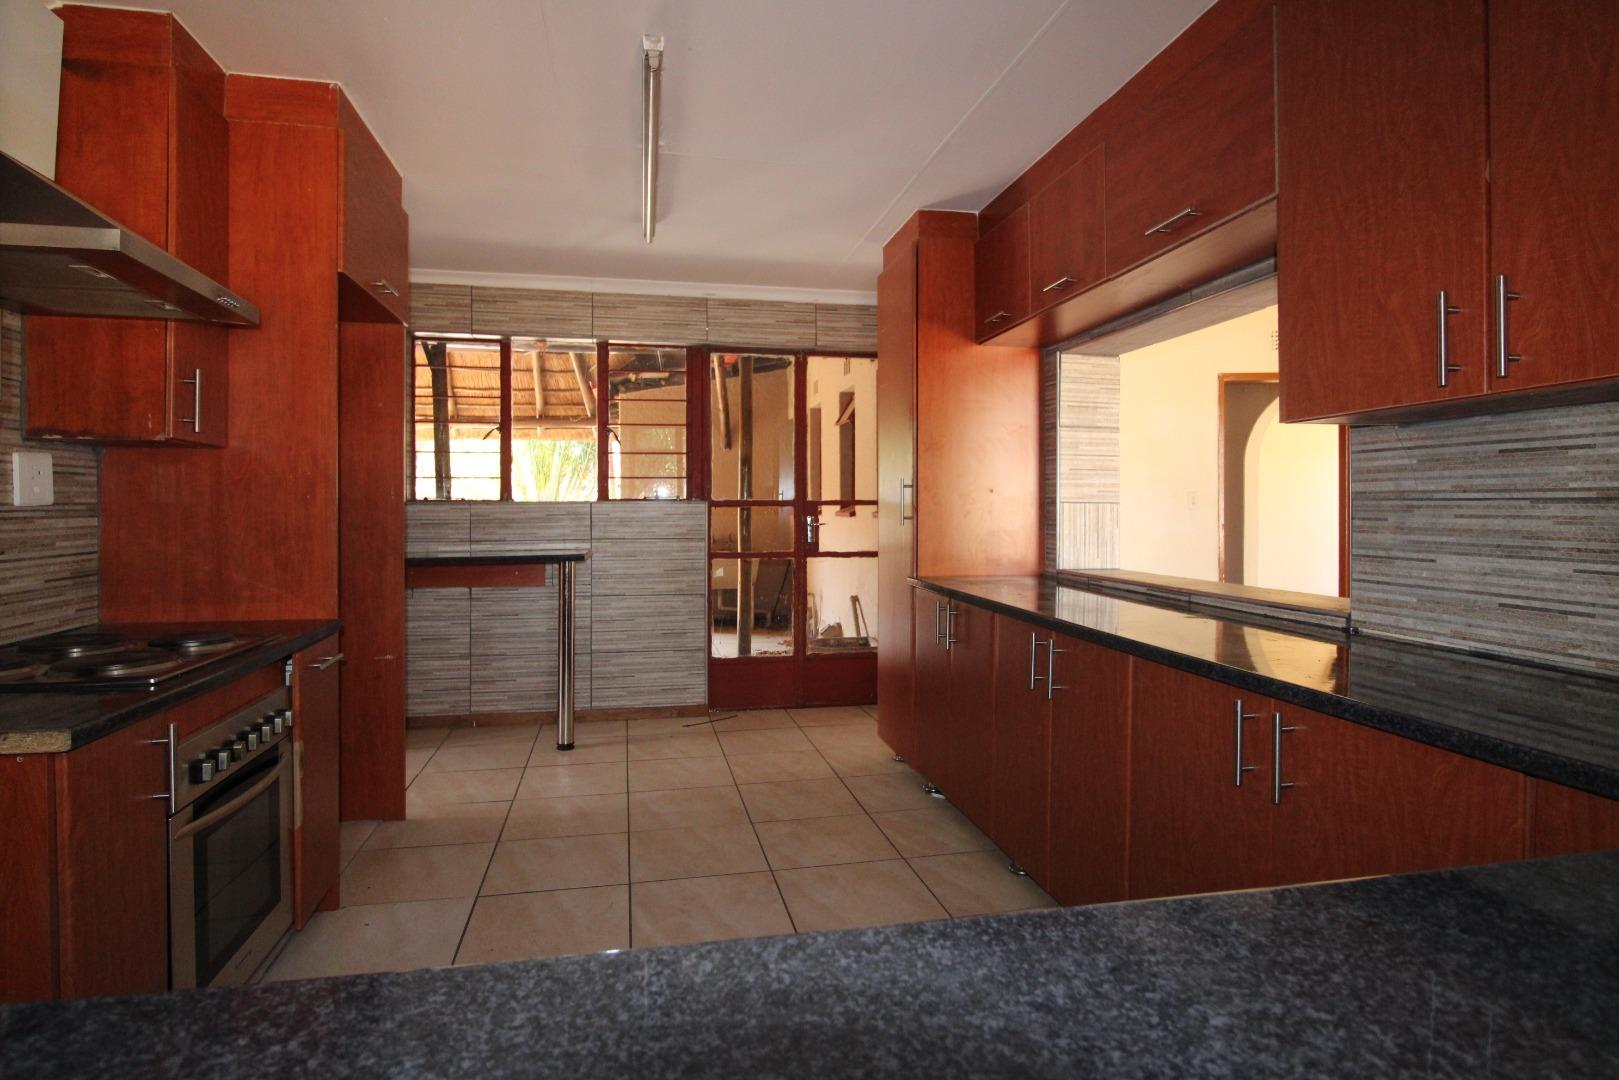 3 Bedroom House for Sale in Vaalpark, Sasolburg - Free State